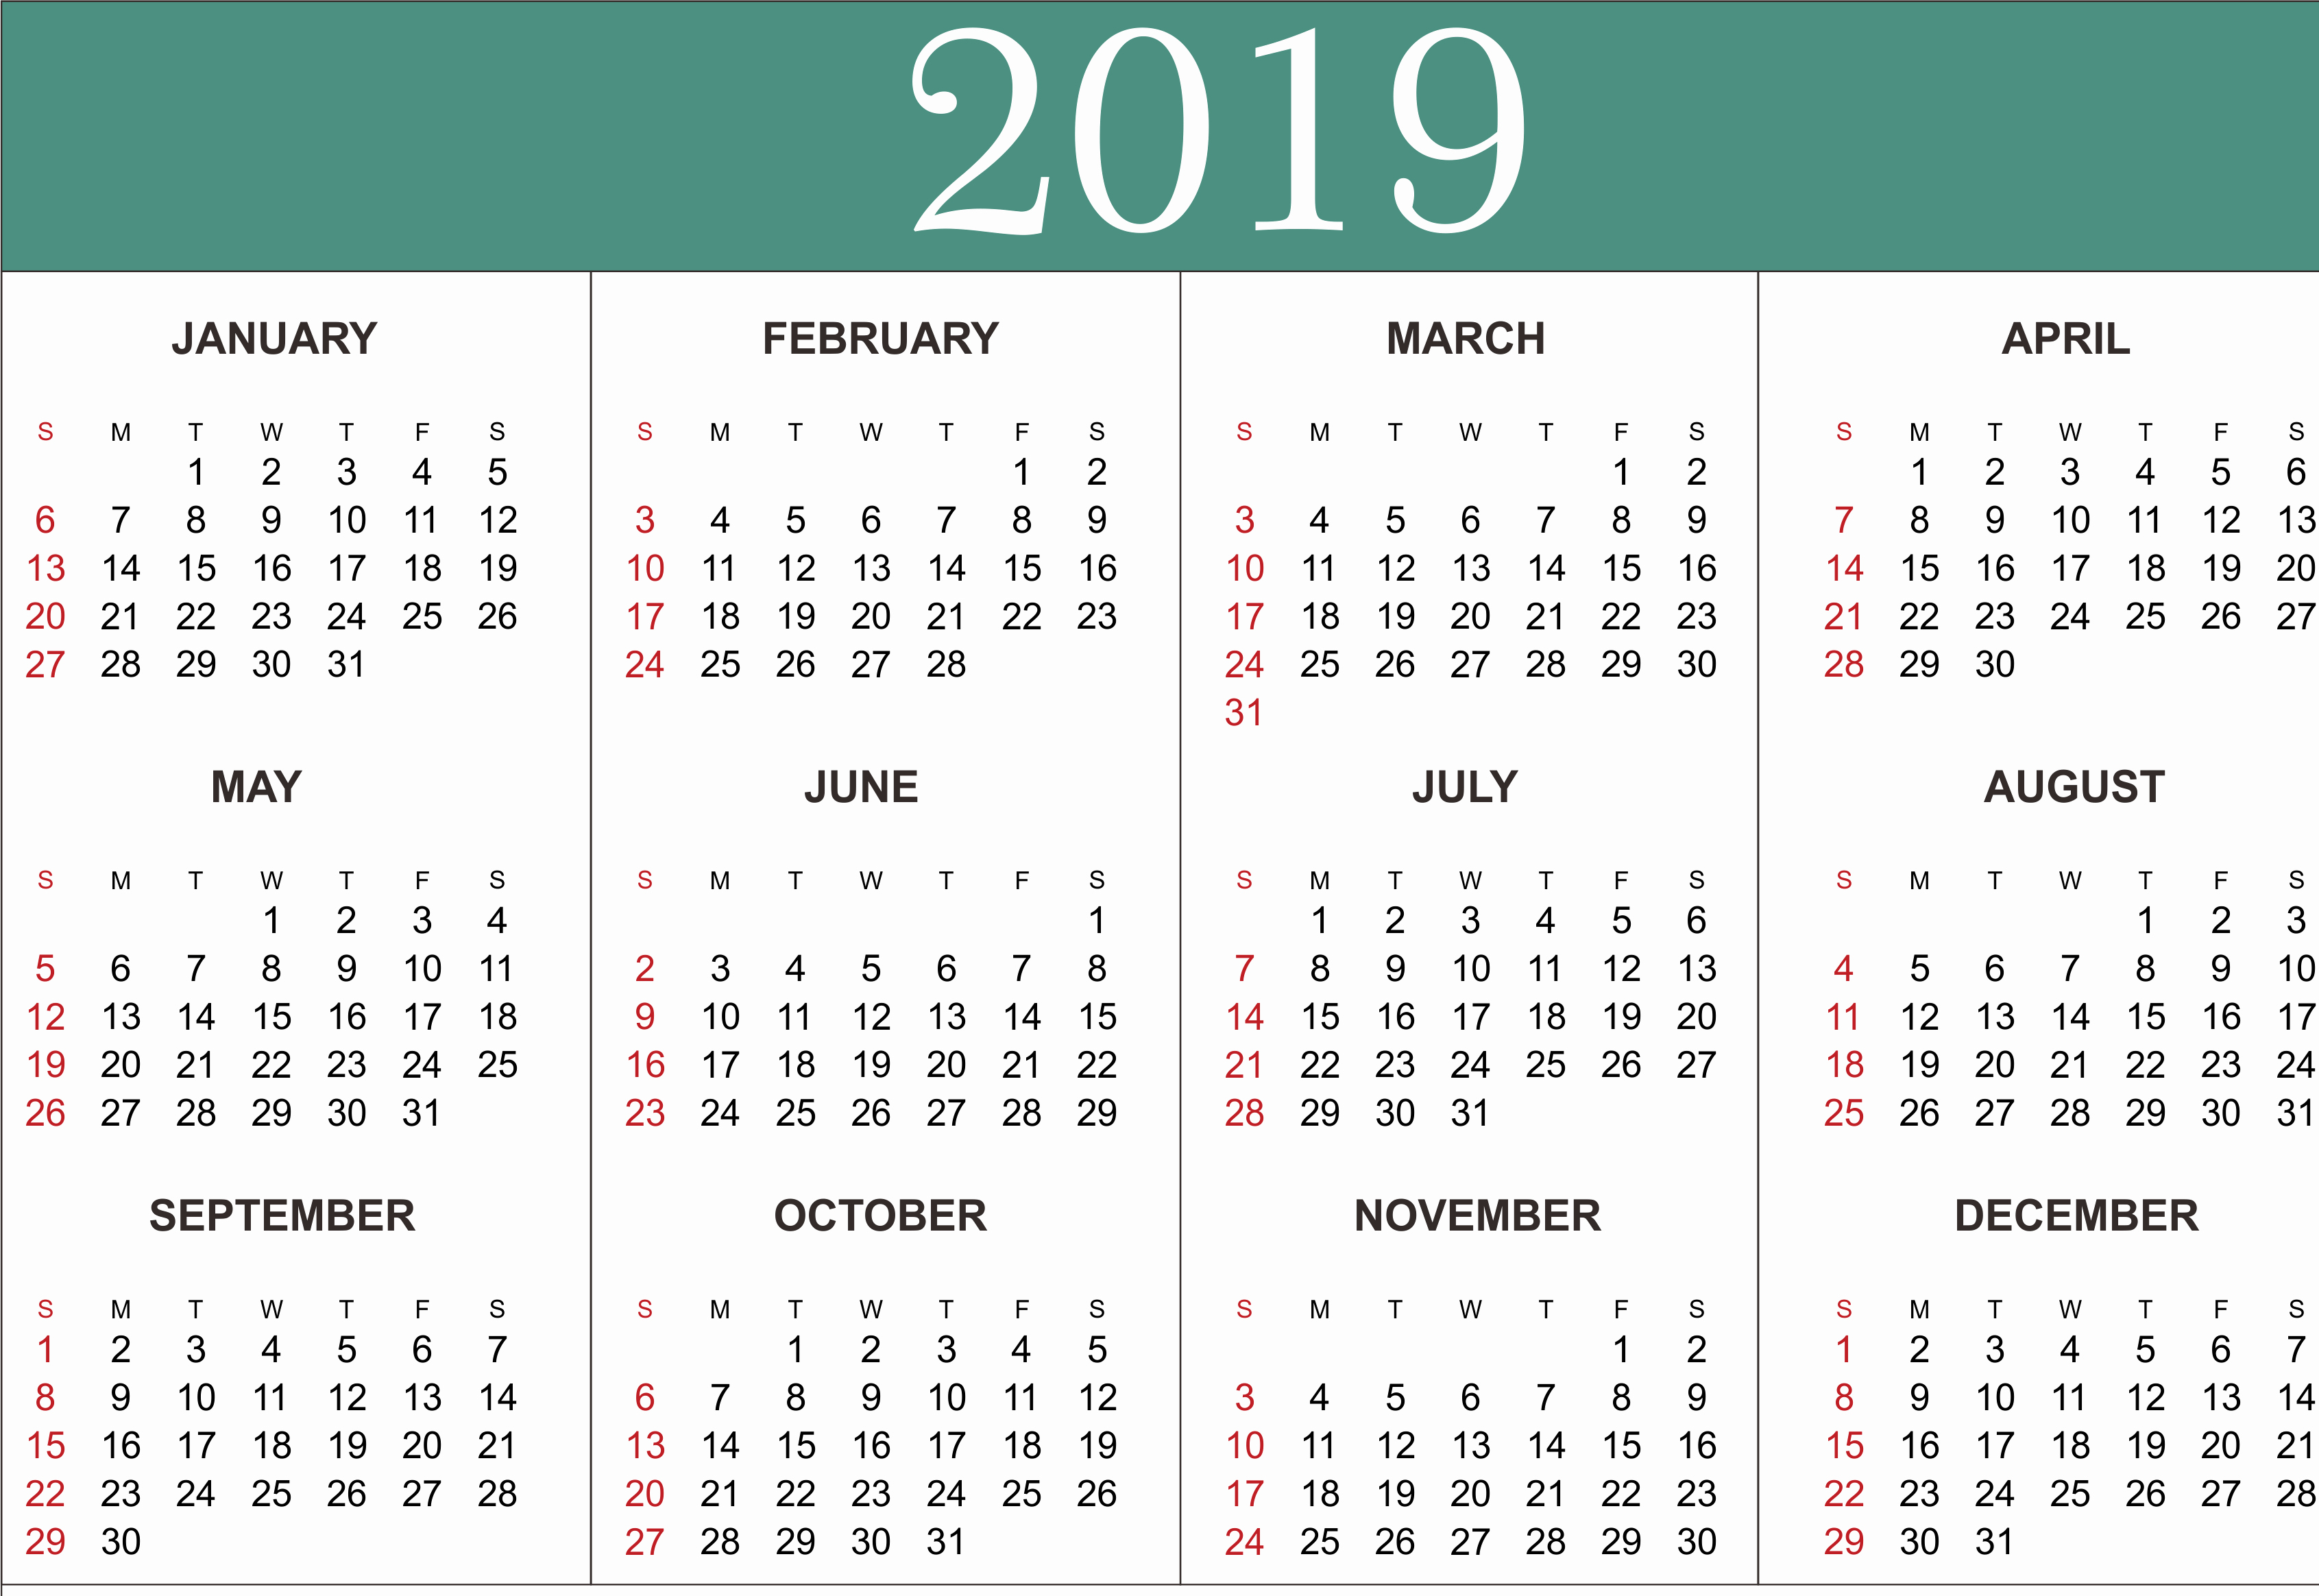 Free Printable 2019 Yearly Calendar Awesome Free Yearly Calendar 2019 Printable Blank Templates